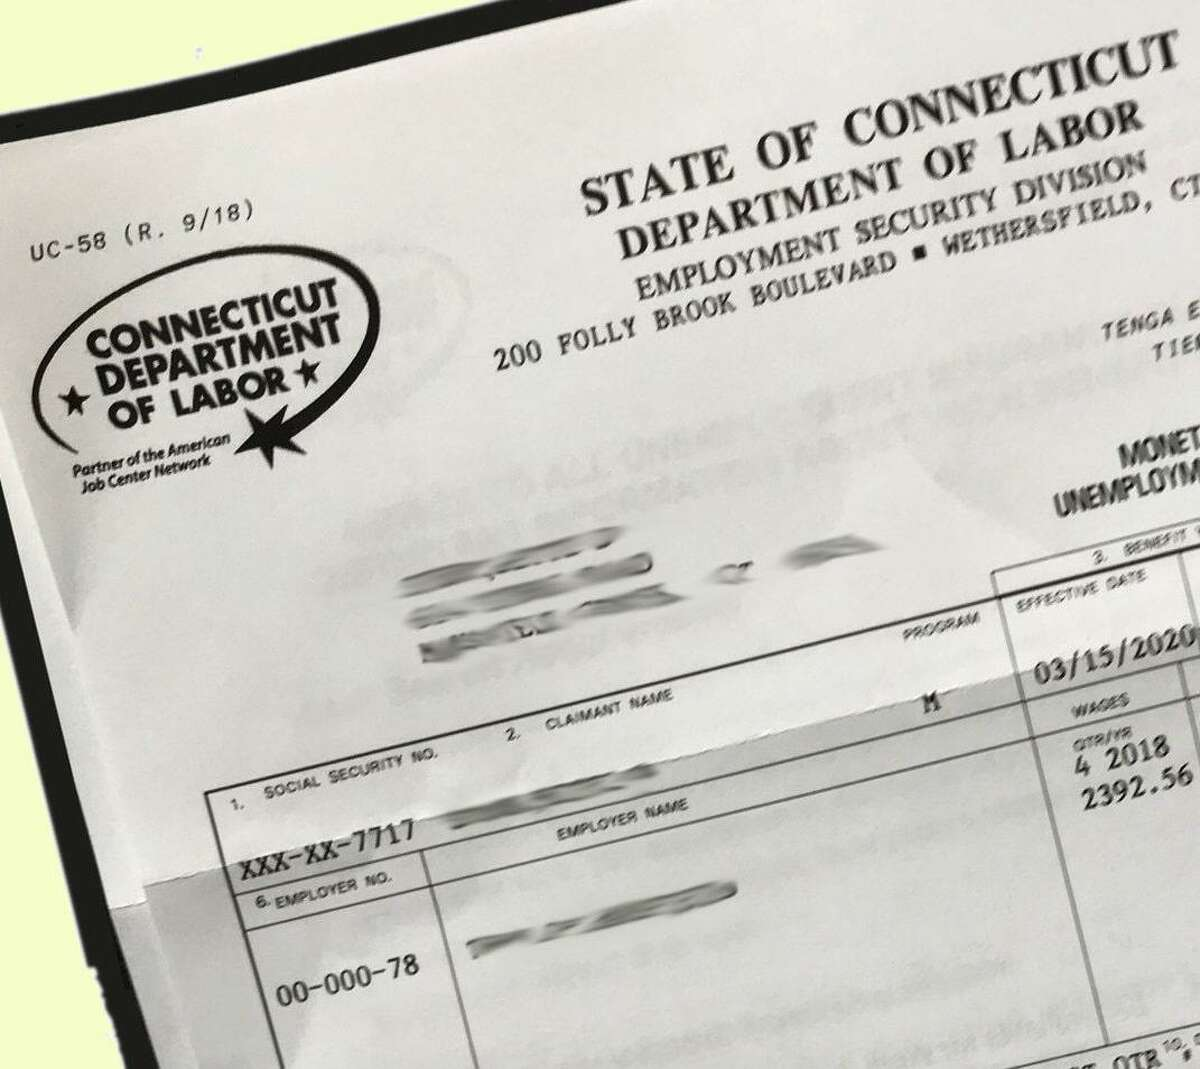 A pair of Connecticut lawmakers are calling on the state Department of Labor to forgive millions of dollars in overpayments that were made through the unemployment system.